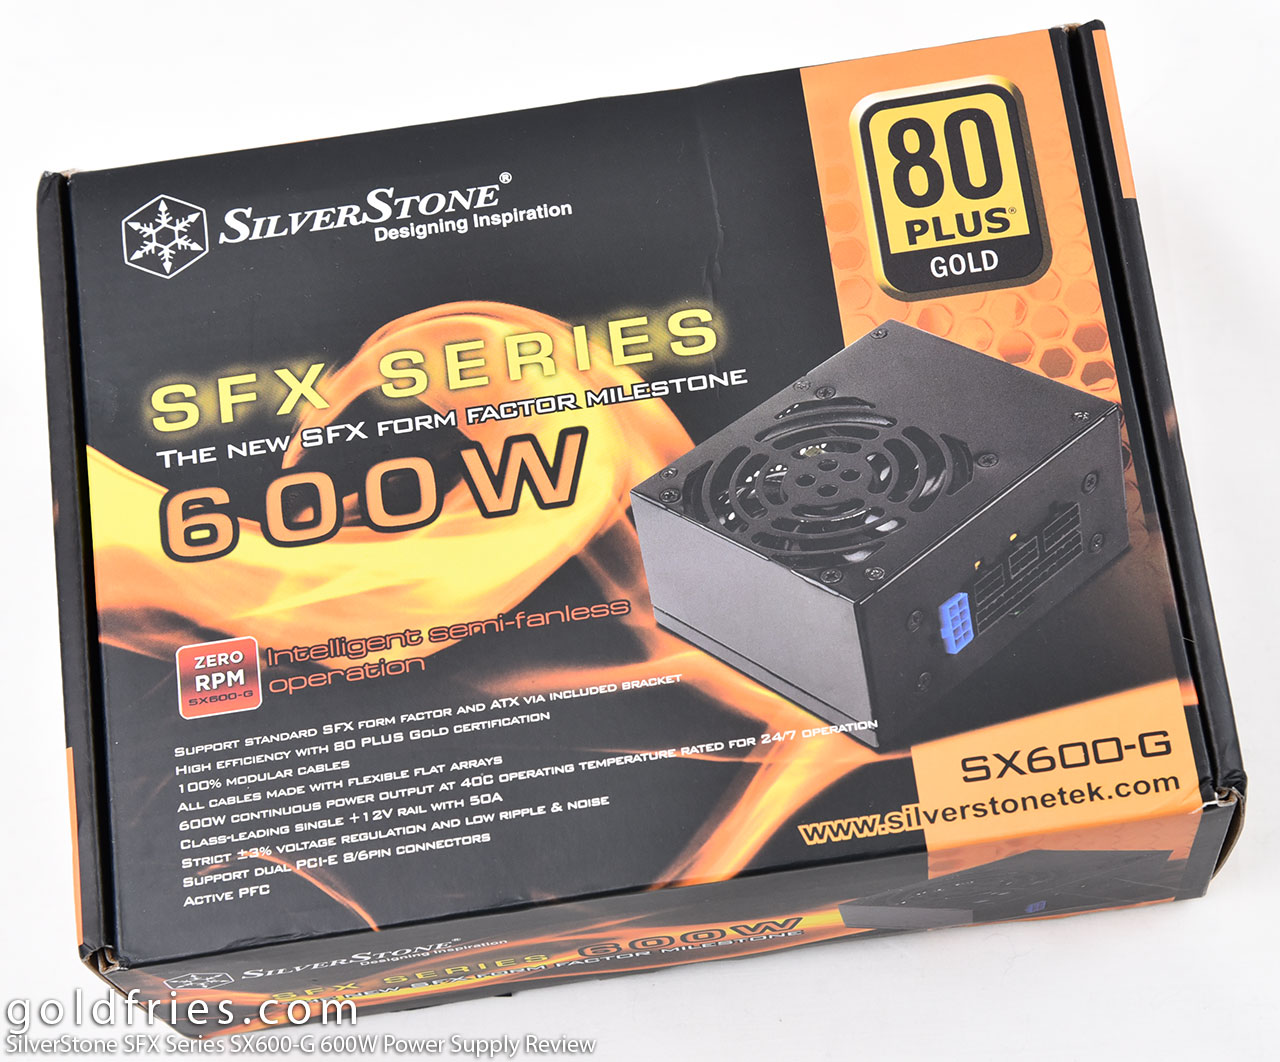 SilverStone SFX Series SX600-G 600W Power Supply Review